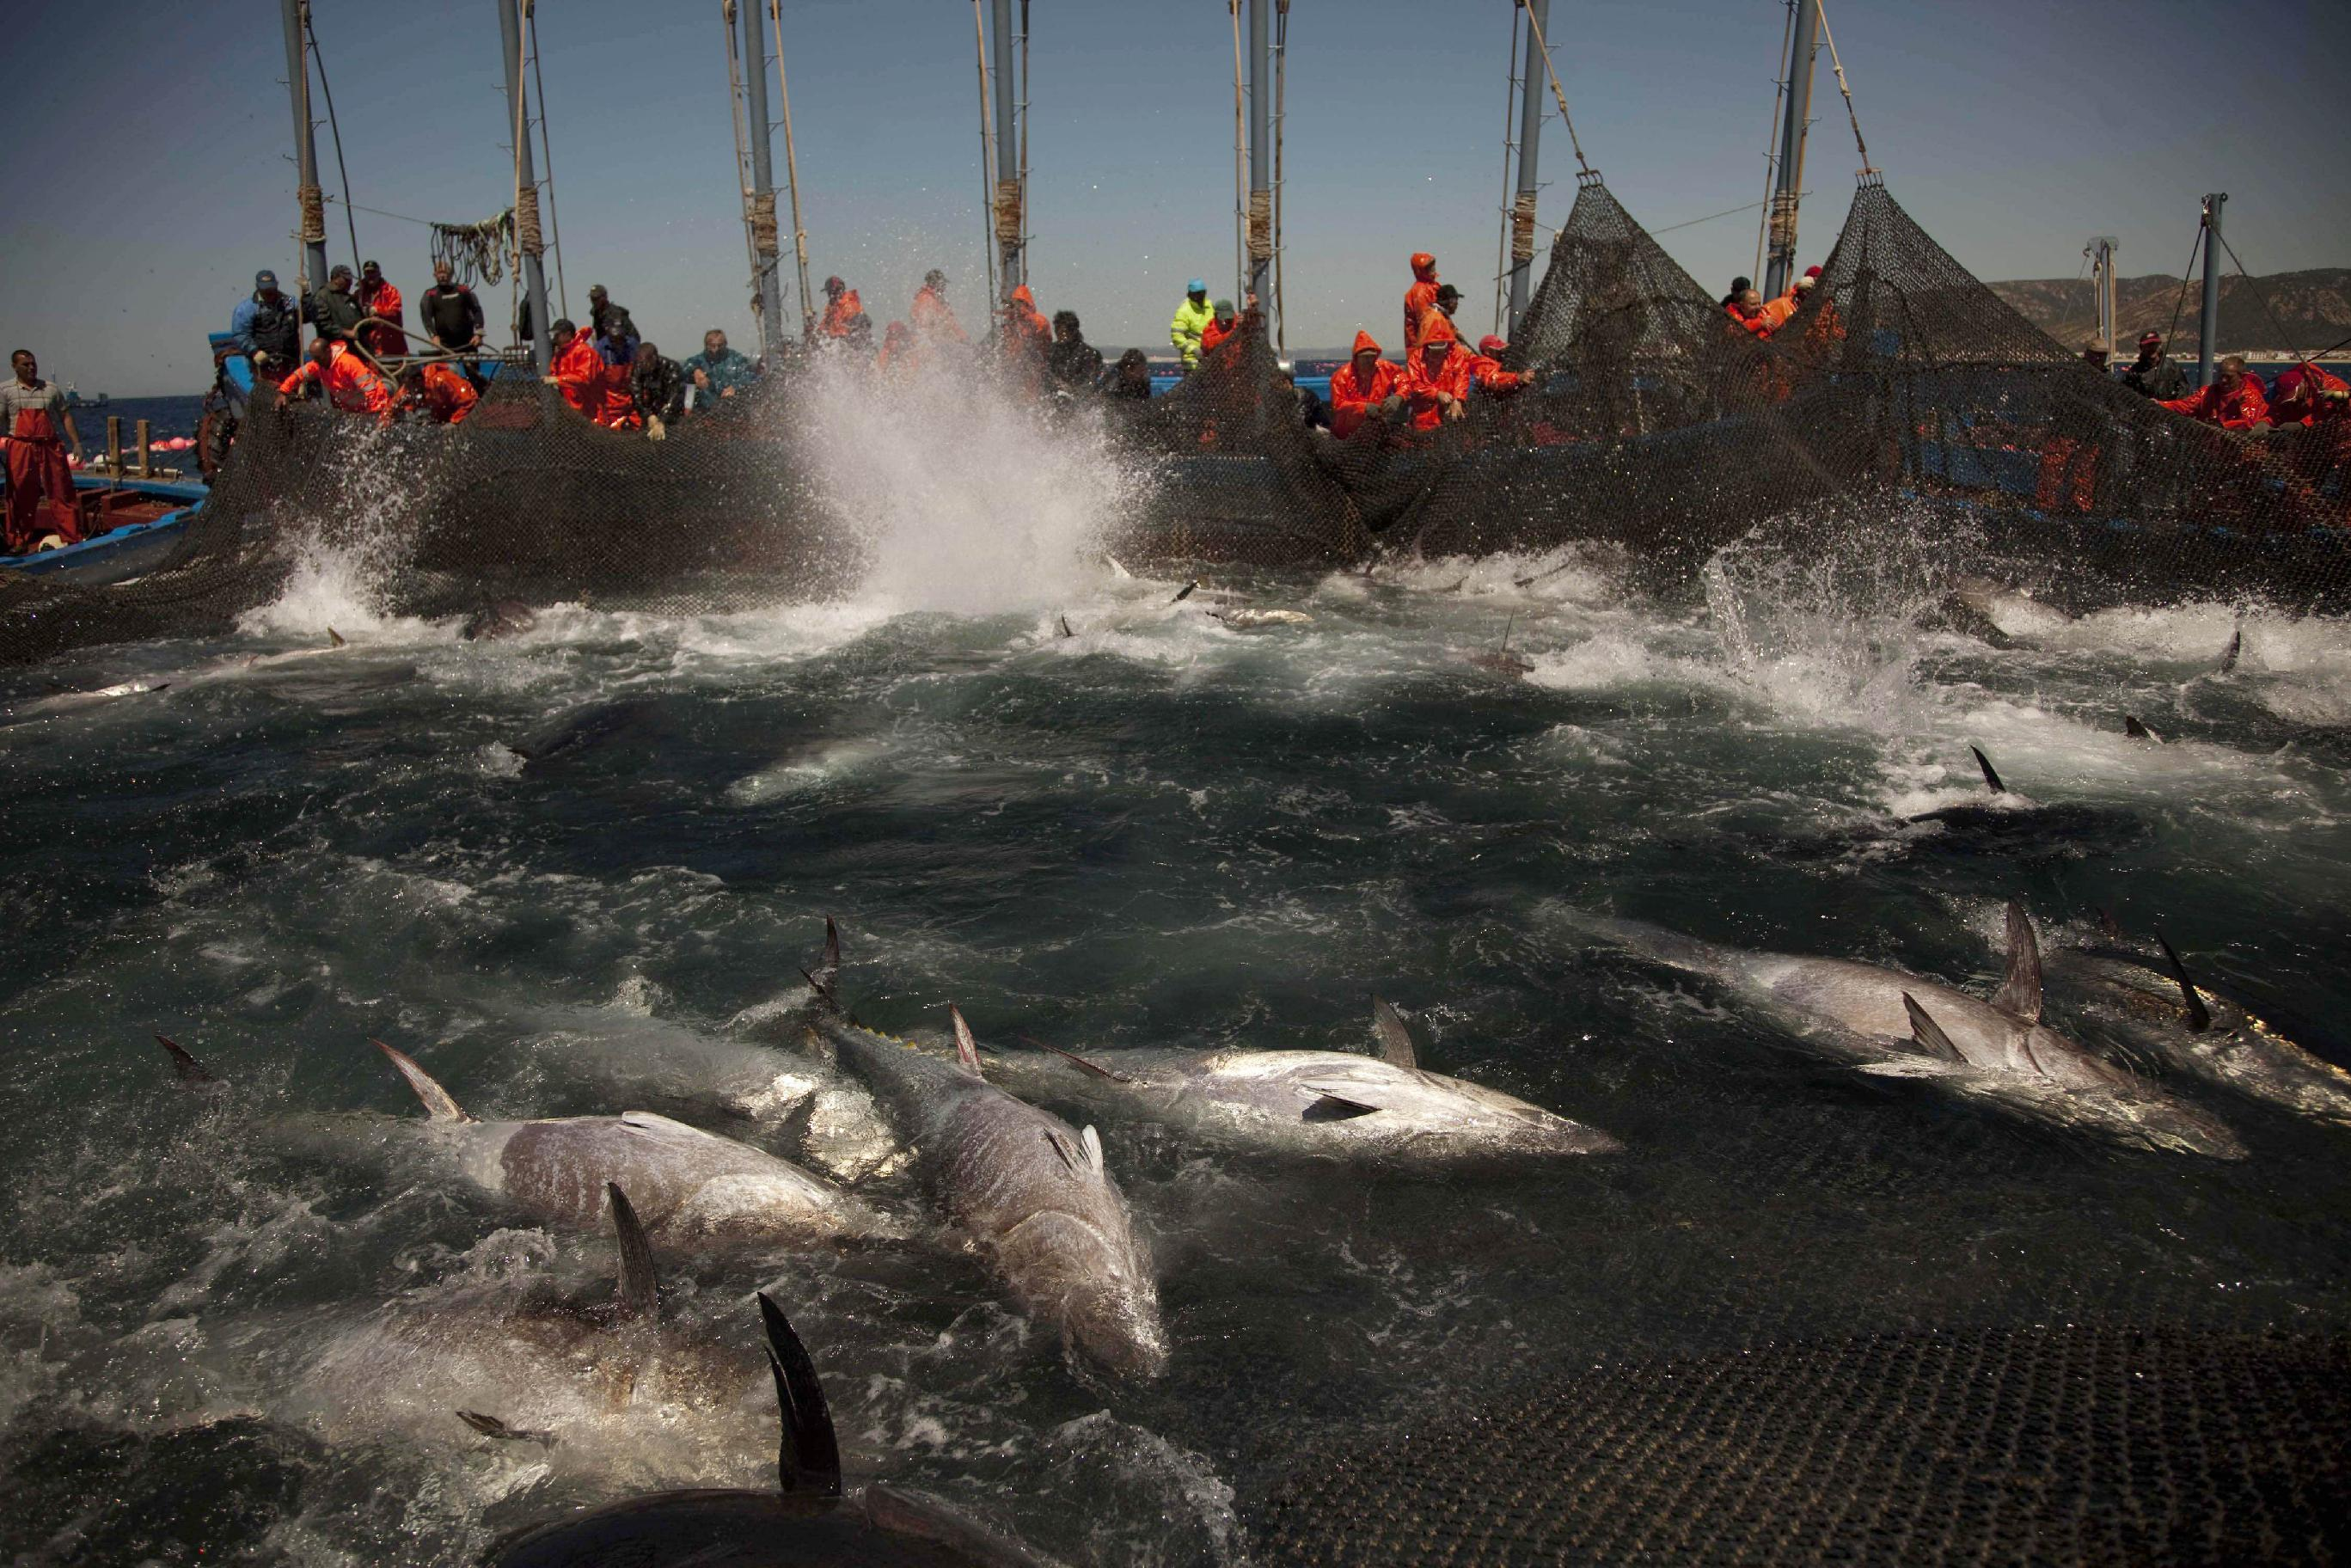 EU, others: Catch plans for Bluefin tuna threaten recovery